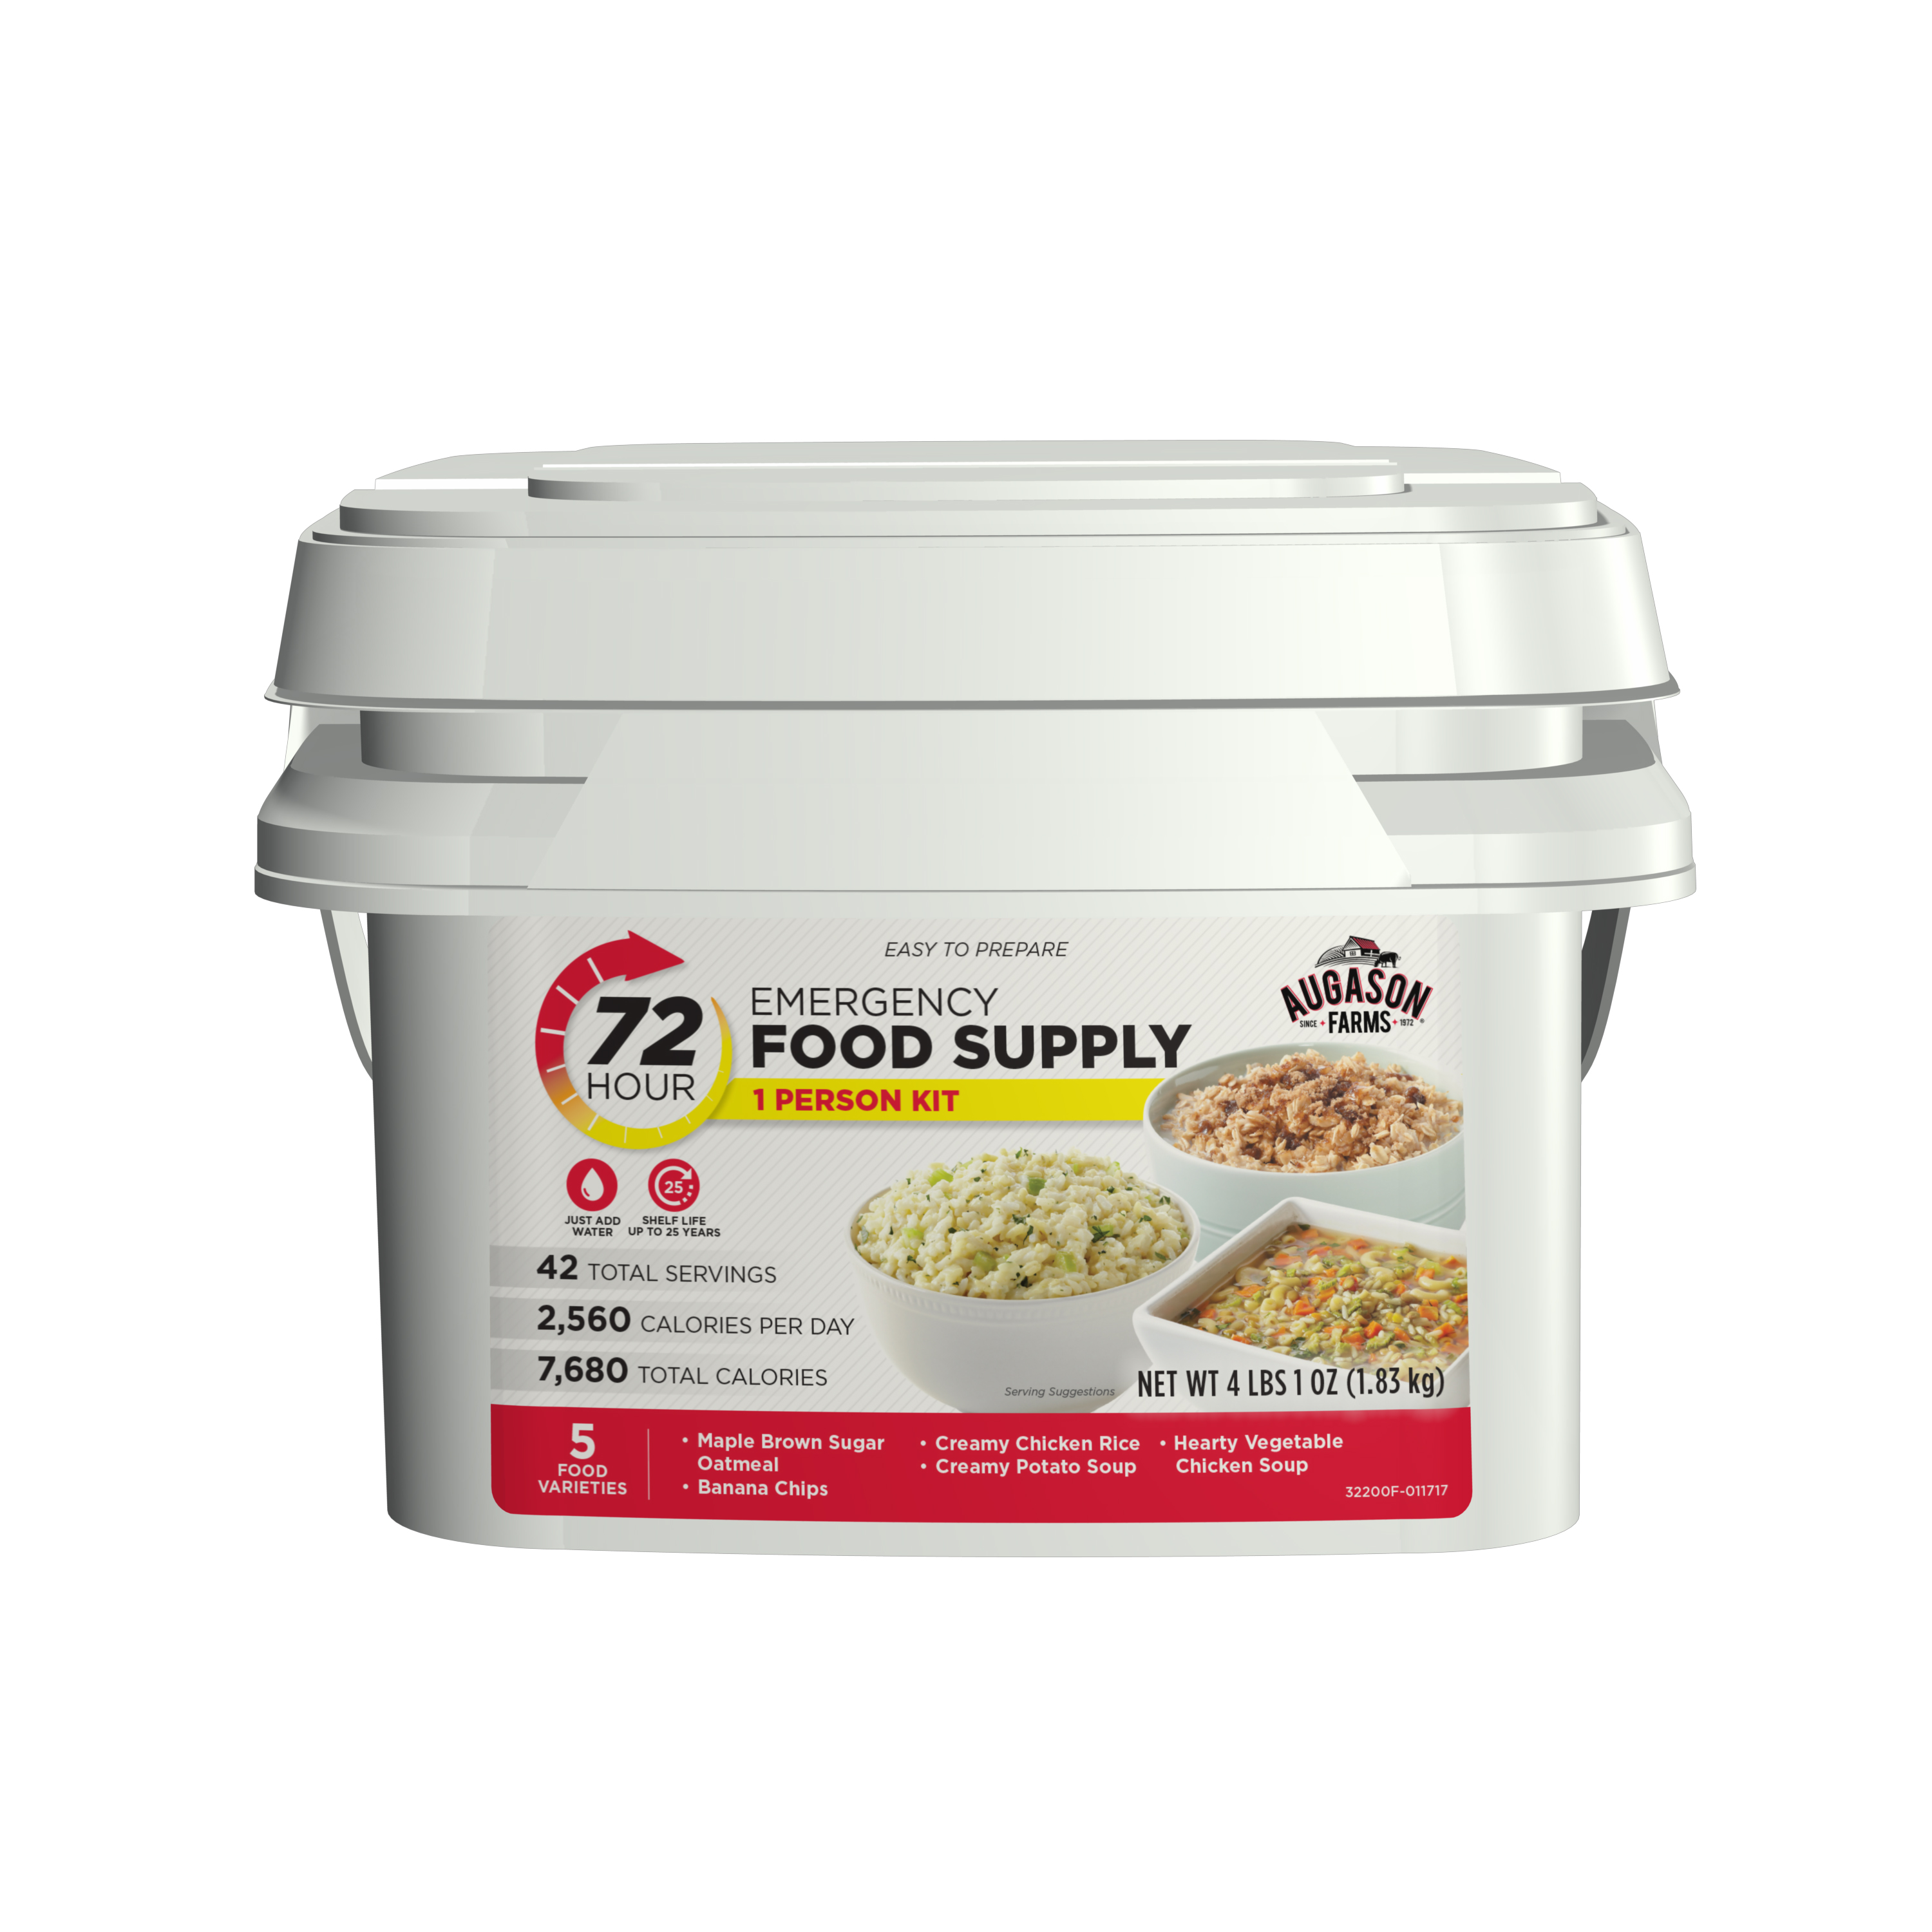 Augason Farms 72-Hour 1-Person Emergency Food Supply Kit 4 lbs 1 oz